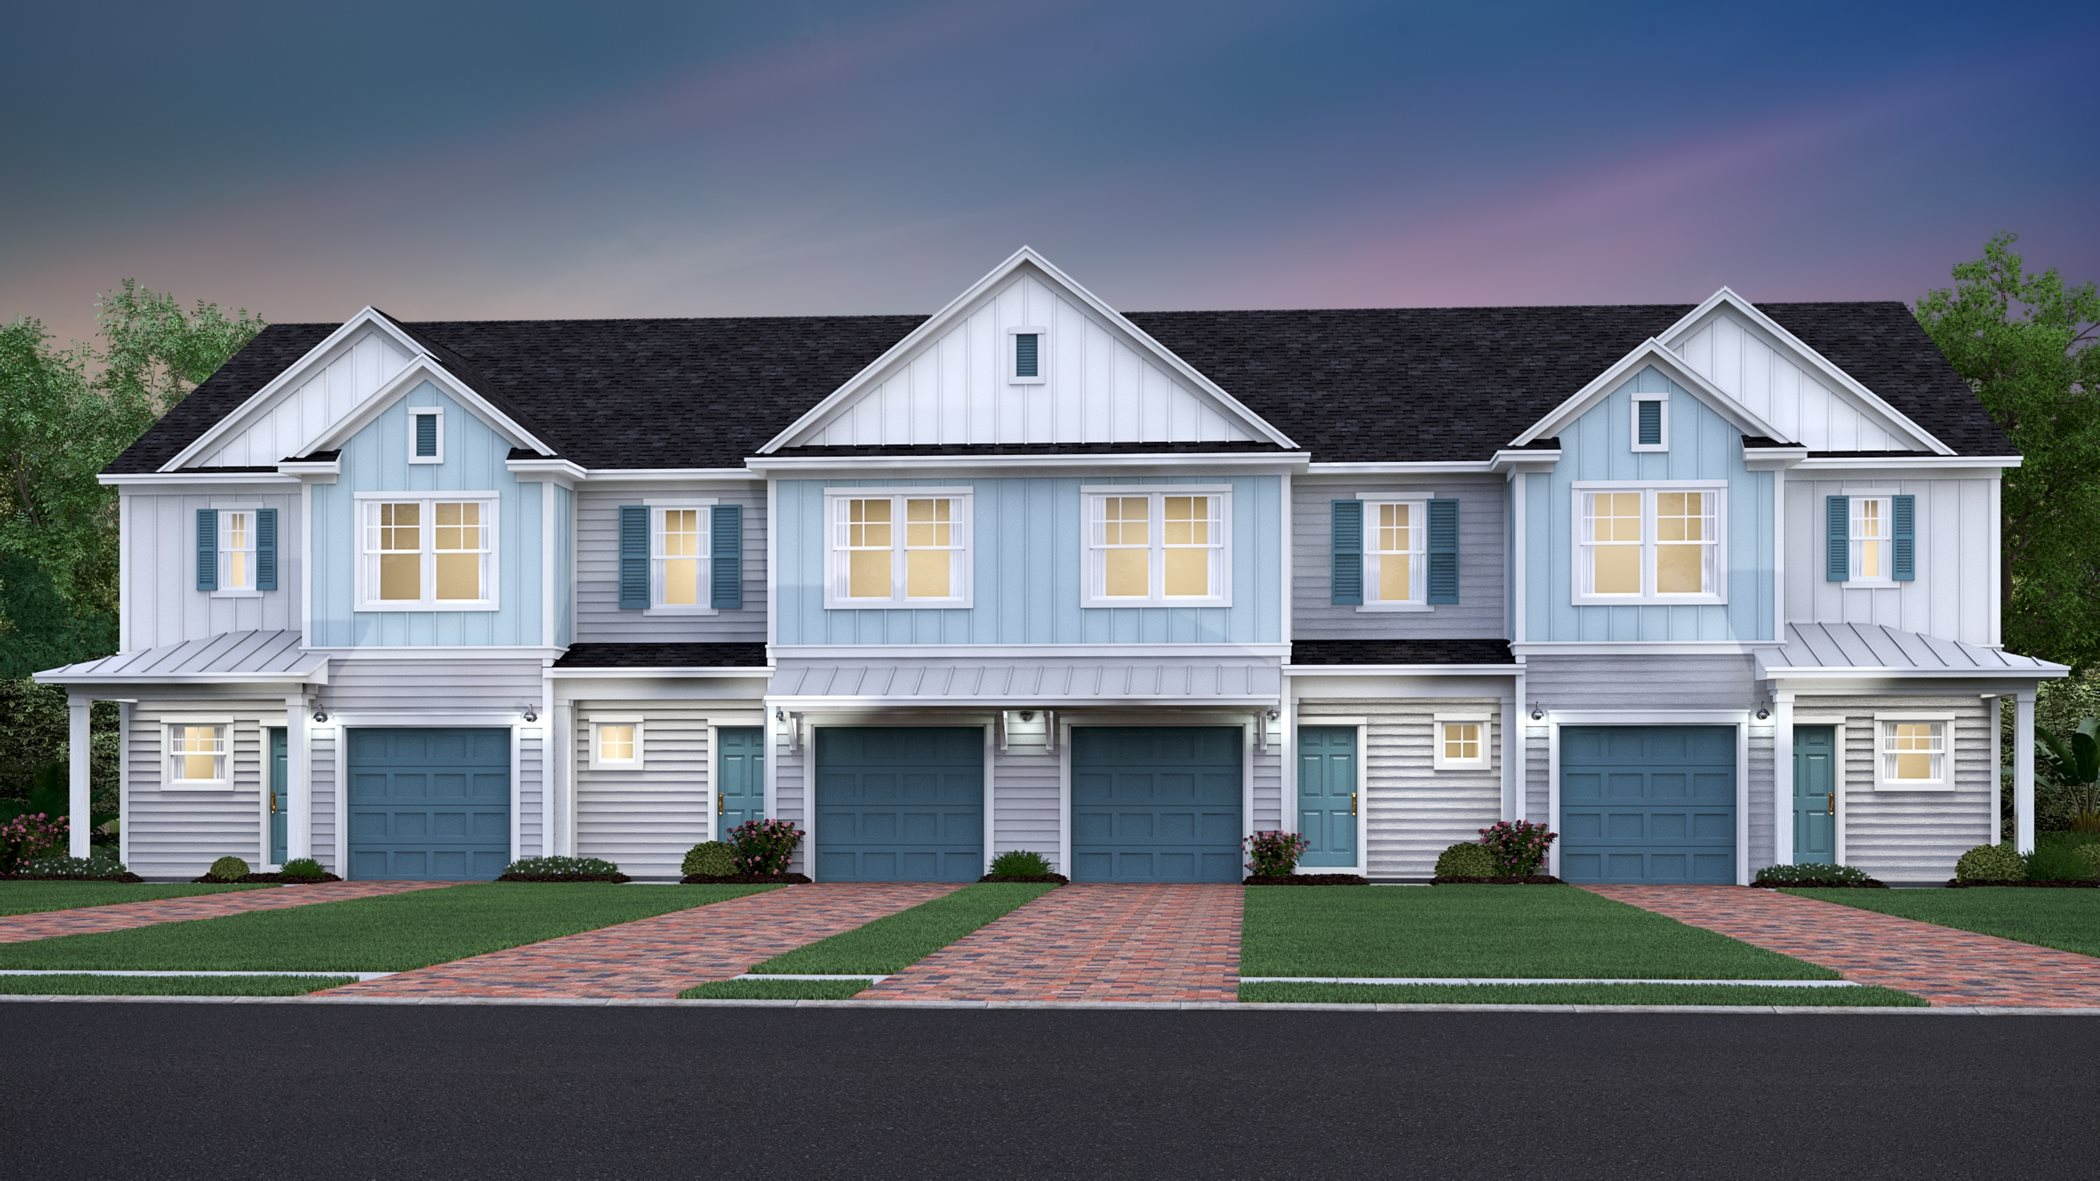 Shearwater Exterior 4-Unit CP